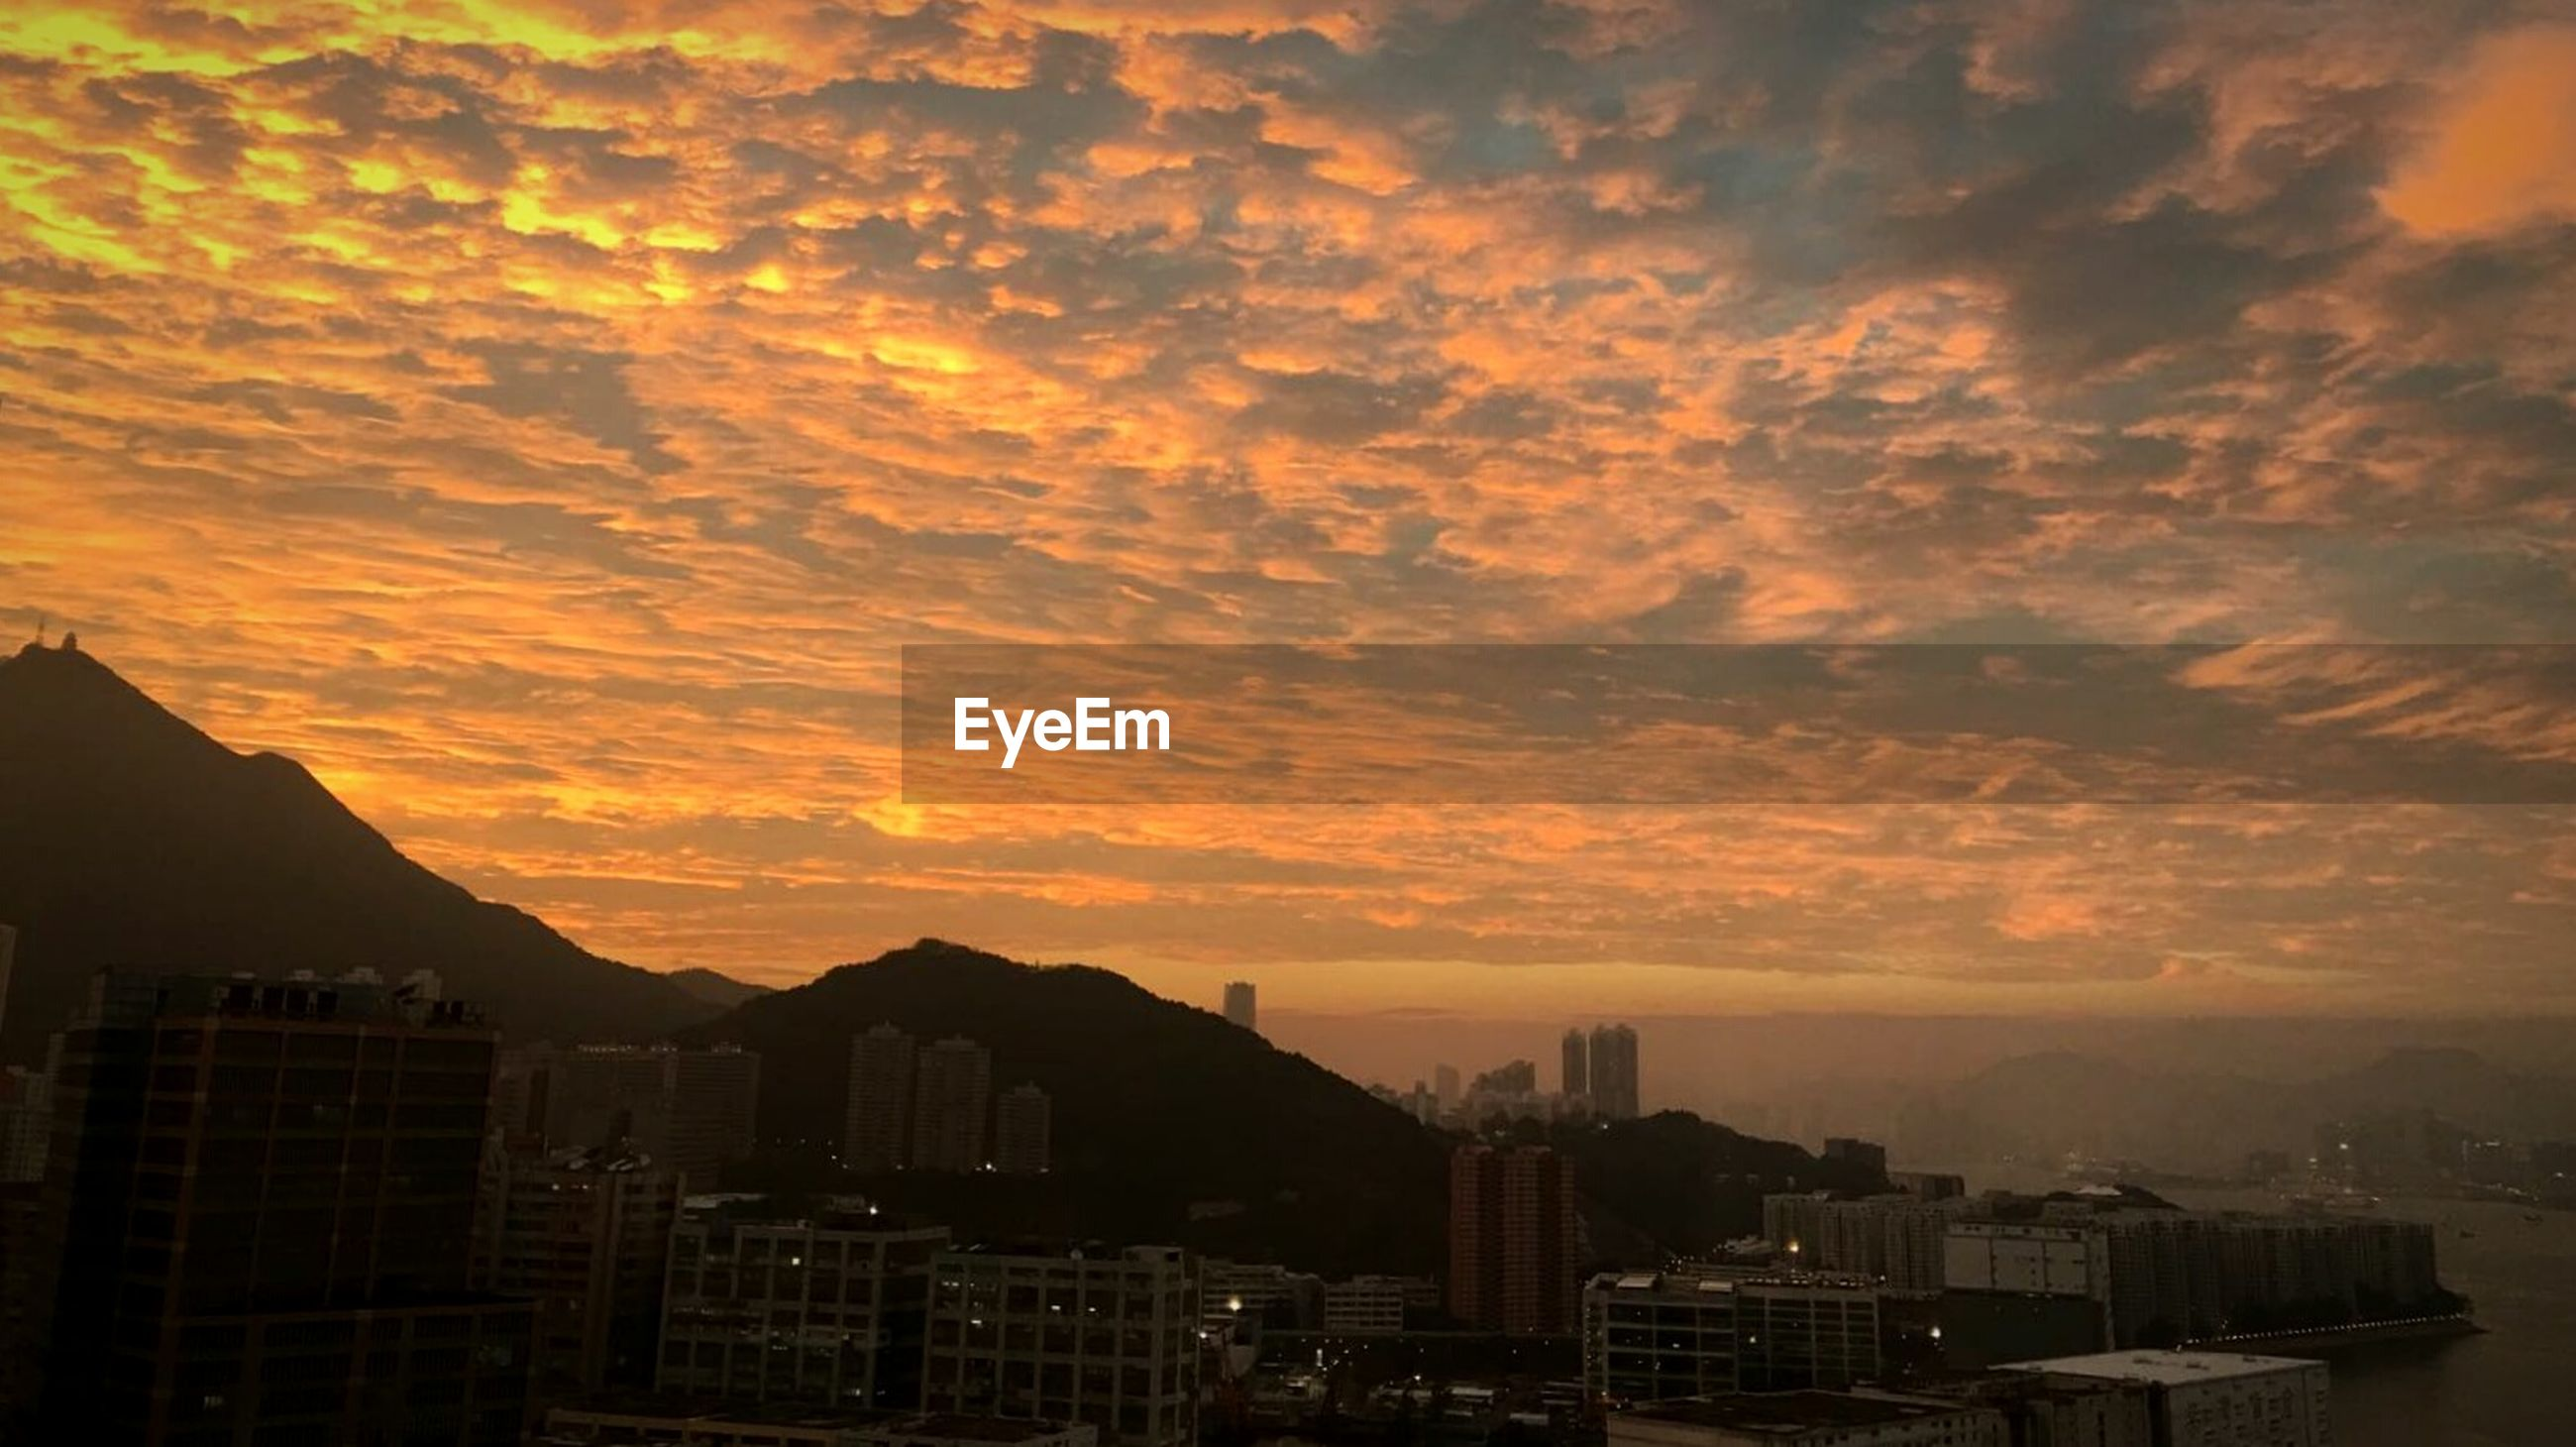 sunset, cityscape, city, urban skyline, architecture, no people, skyscraper, building exterior, cloud - sky, sky, outdoors, beauty in nature